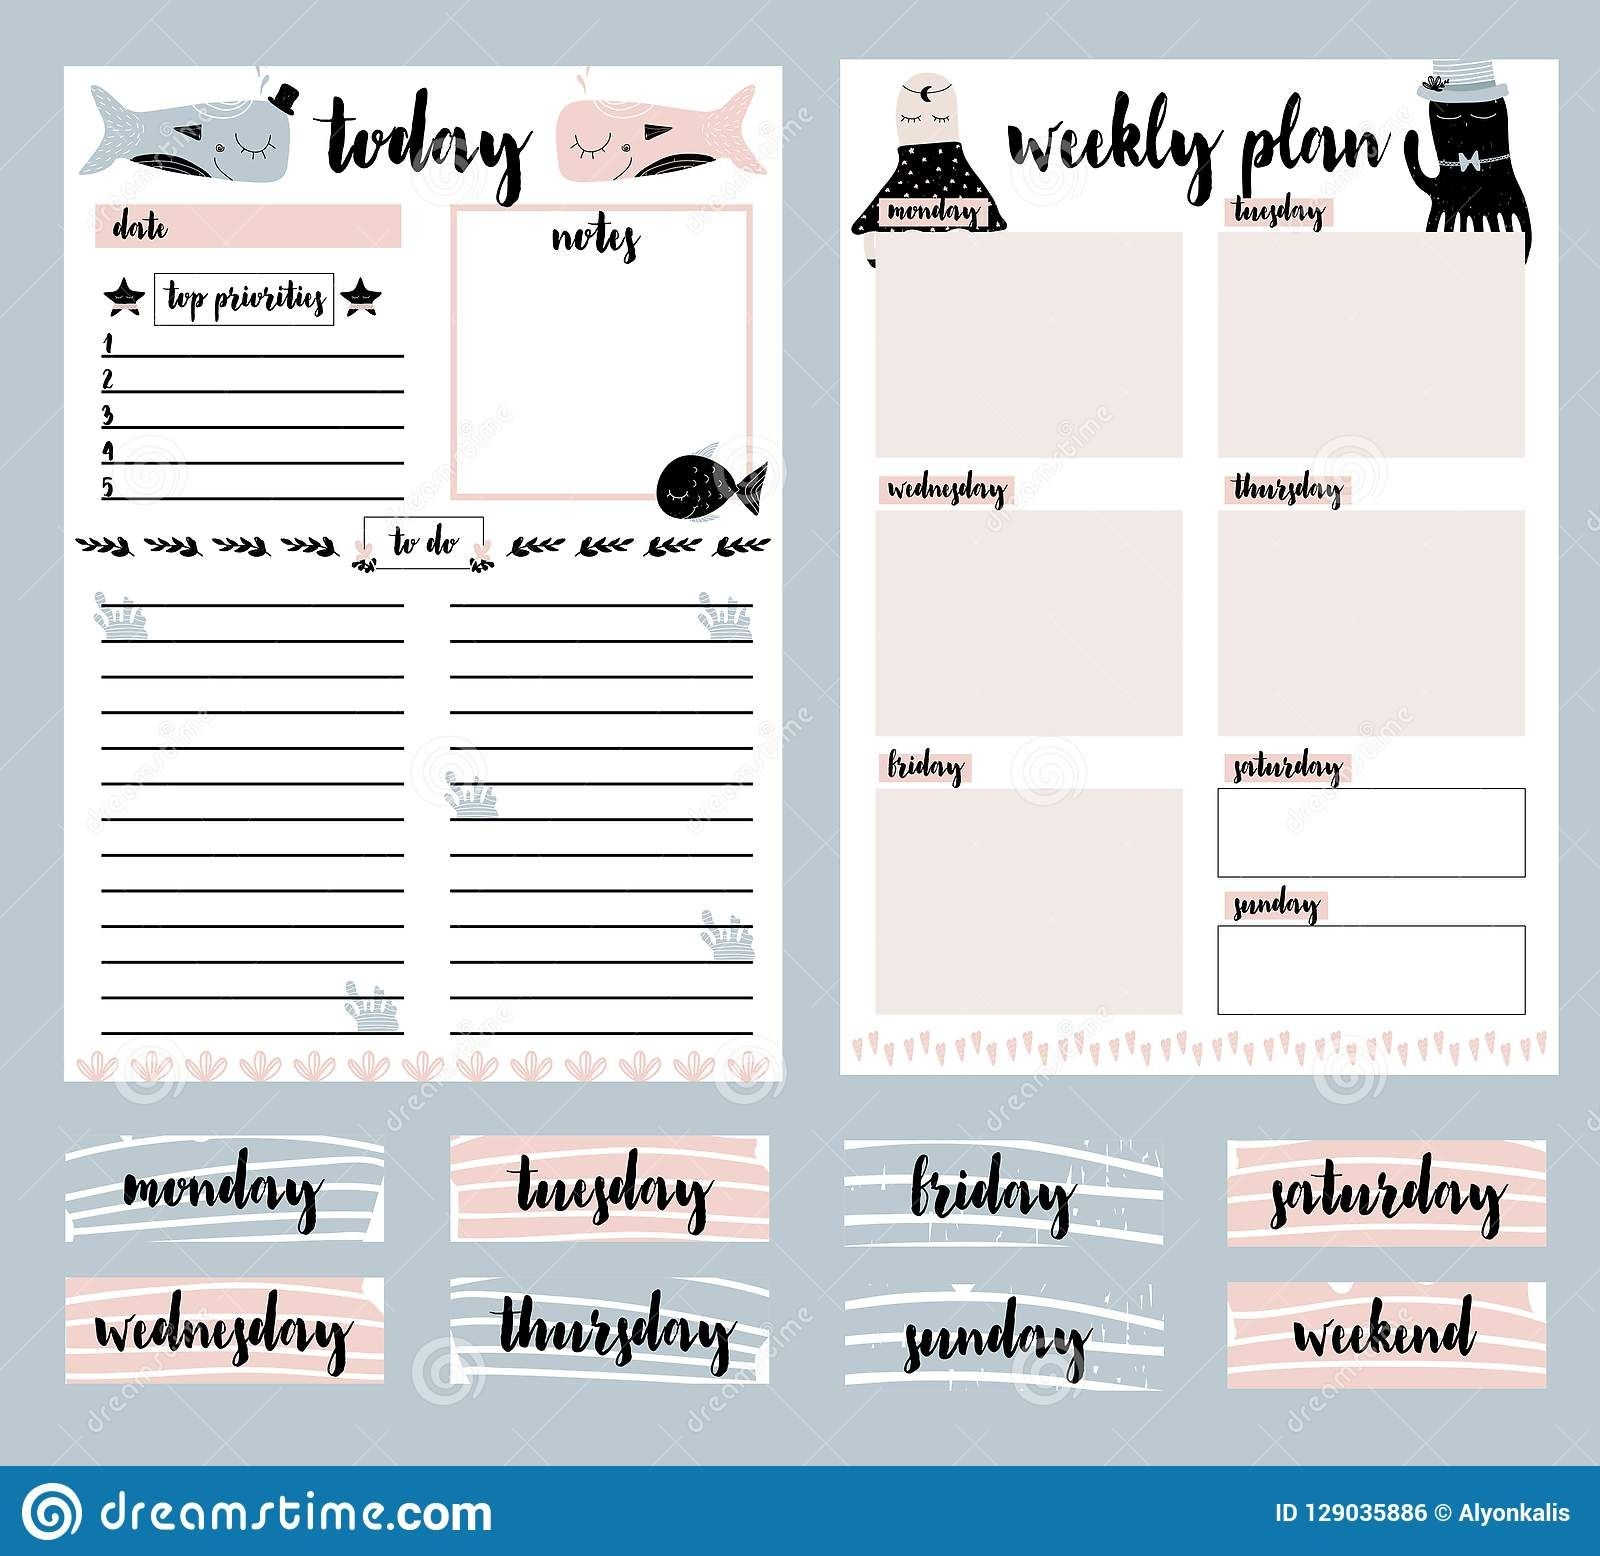 clip art, collection of daily planner, weekly planner